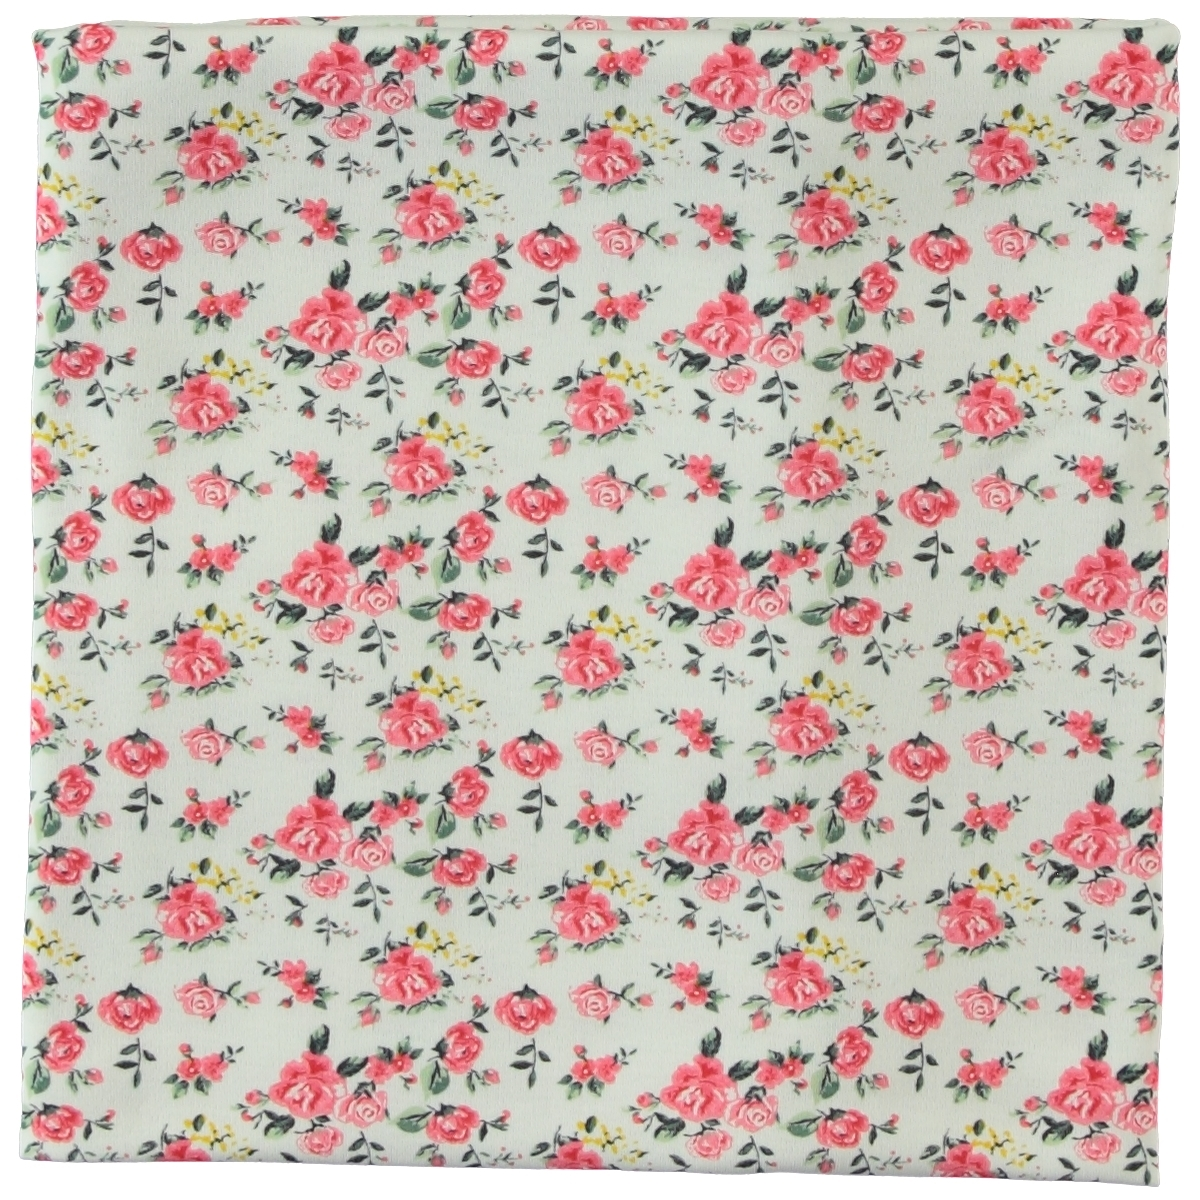 Misket Girl combed cotton baby blanket 80x90 cm tongue in cheek